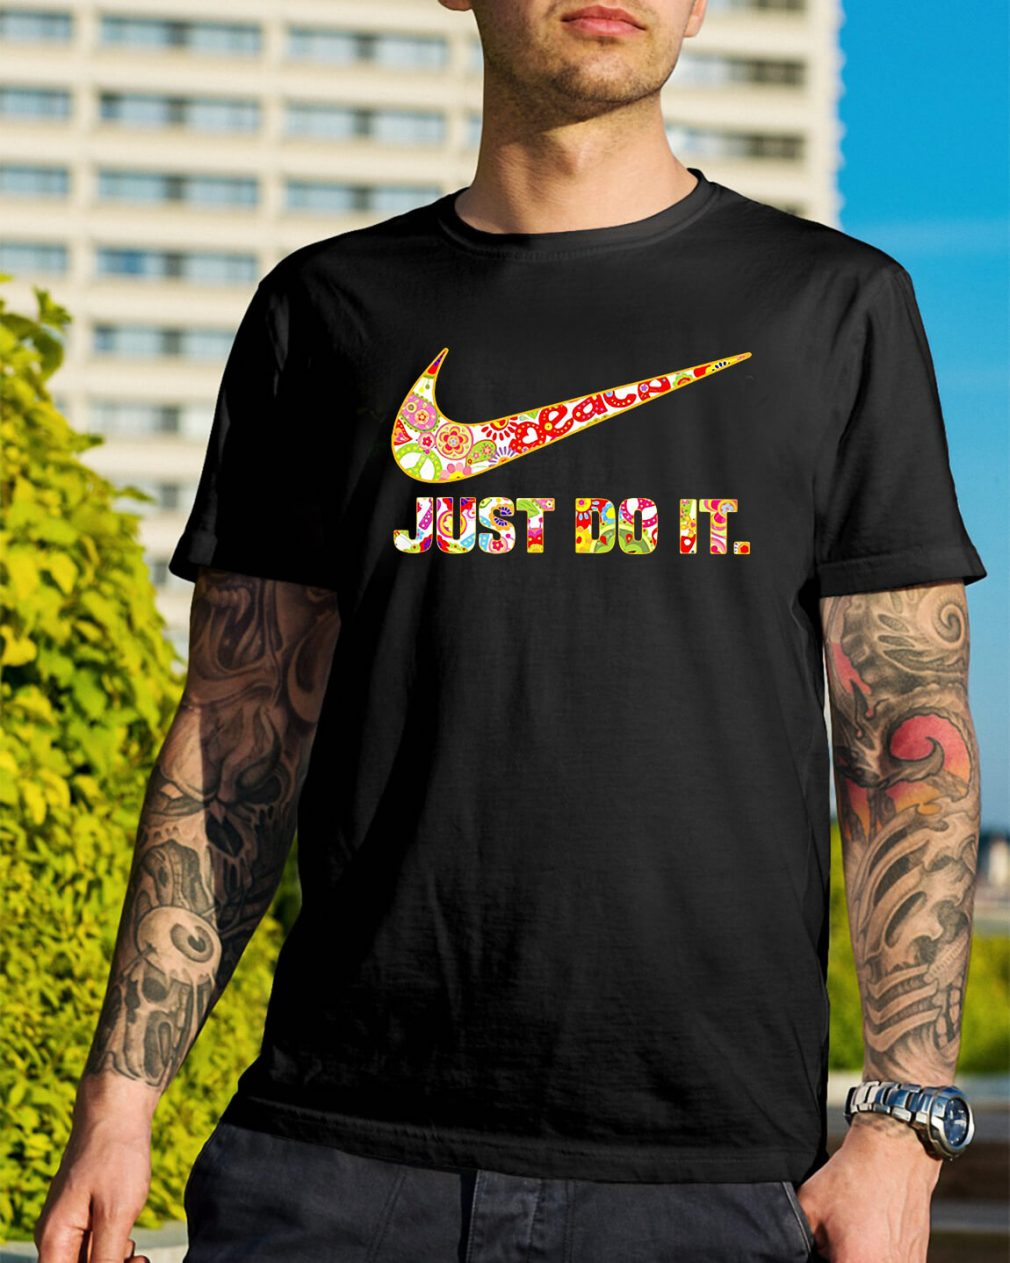 Nike Just do it floral shirt